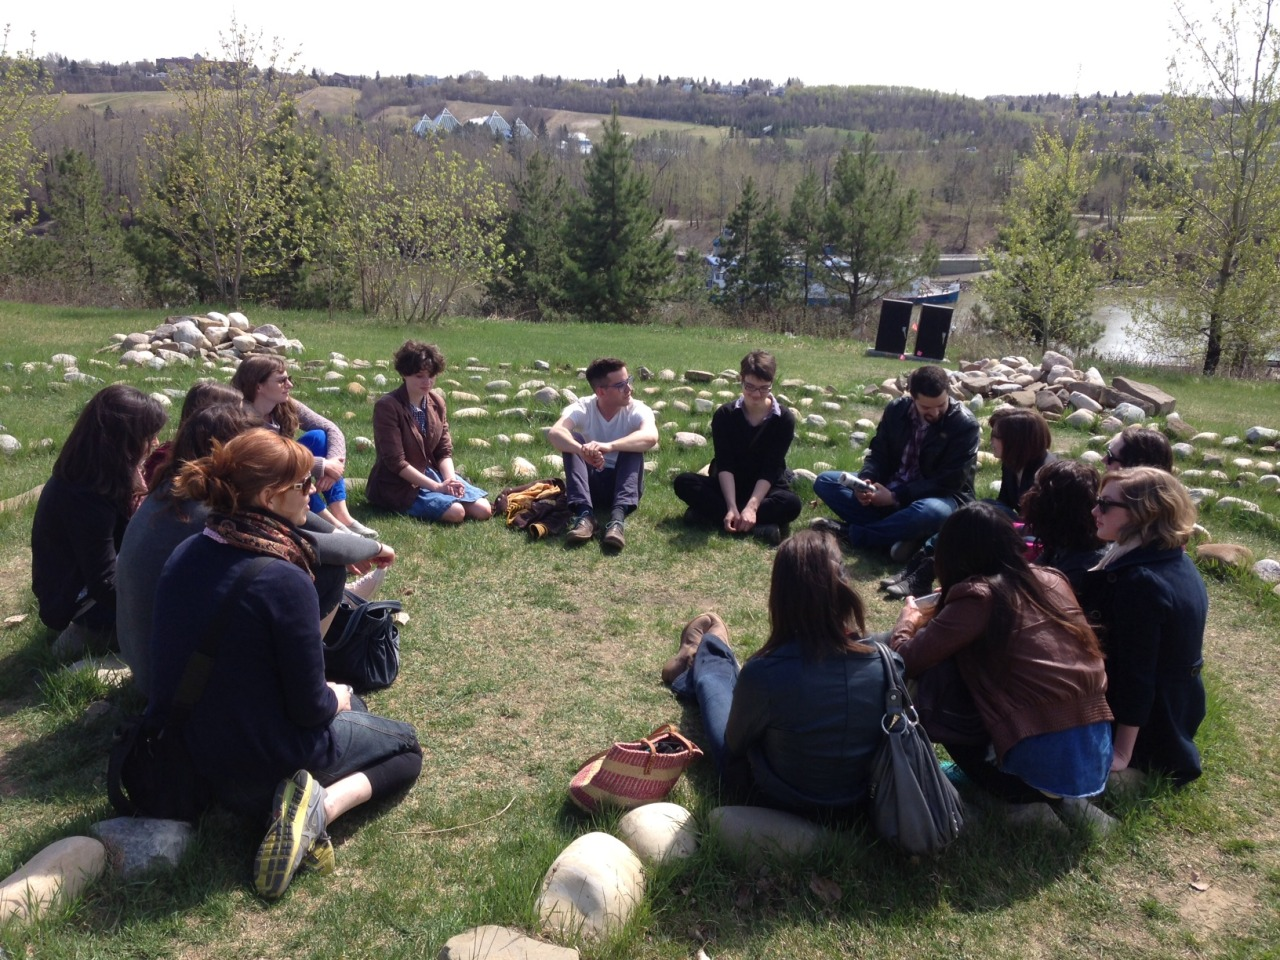 Interns discussing Lea Dorion's  Turtle Rock Effigy Labyrinth  in Louise McKinney Park, downtown Edmonton. Dorion's work was created as part of The Works Art & Design Festival in 2010. Just another day at the office!